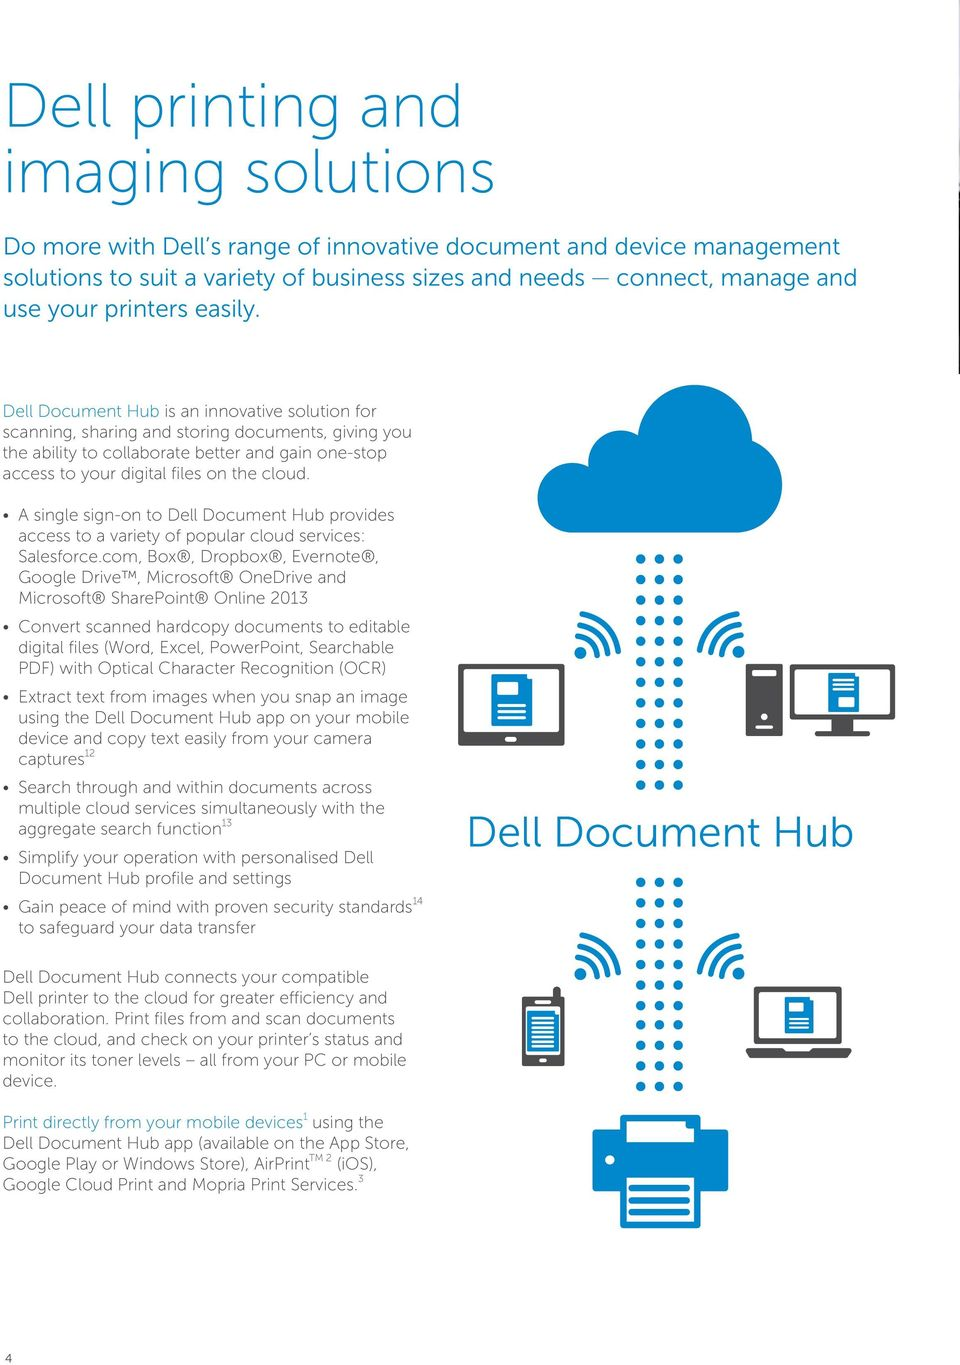 Dell Document Hub is an innovative solution for scanning, sharing and storing documents, giving you the ability to collaborate better and gain one-stop access to your digital files on the cloud.